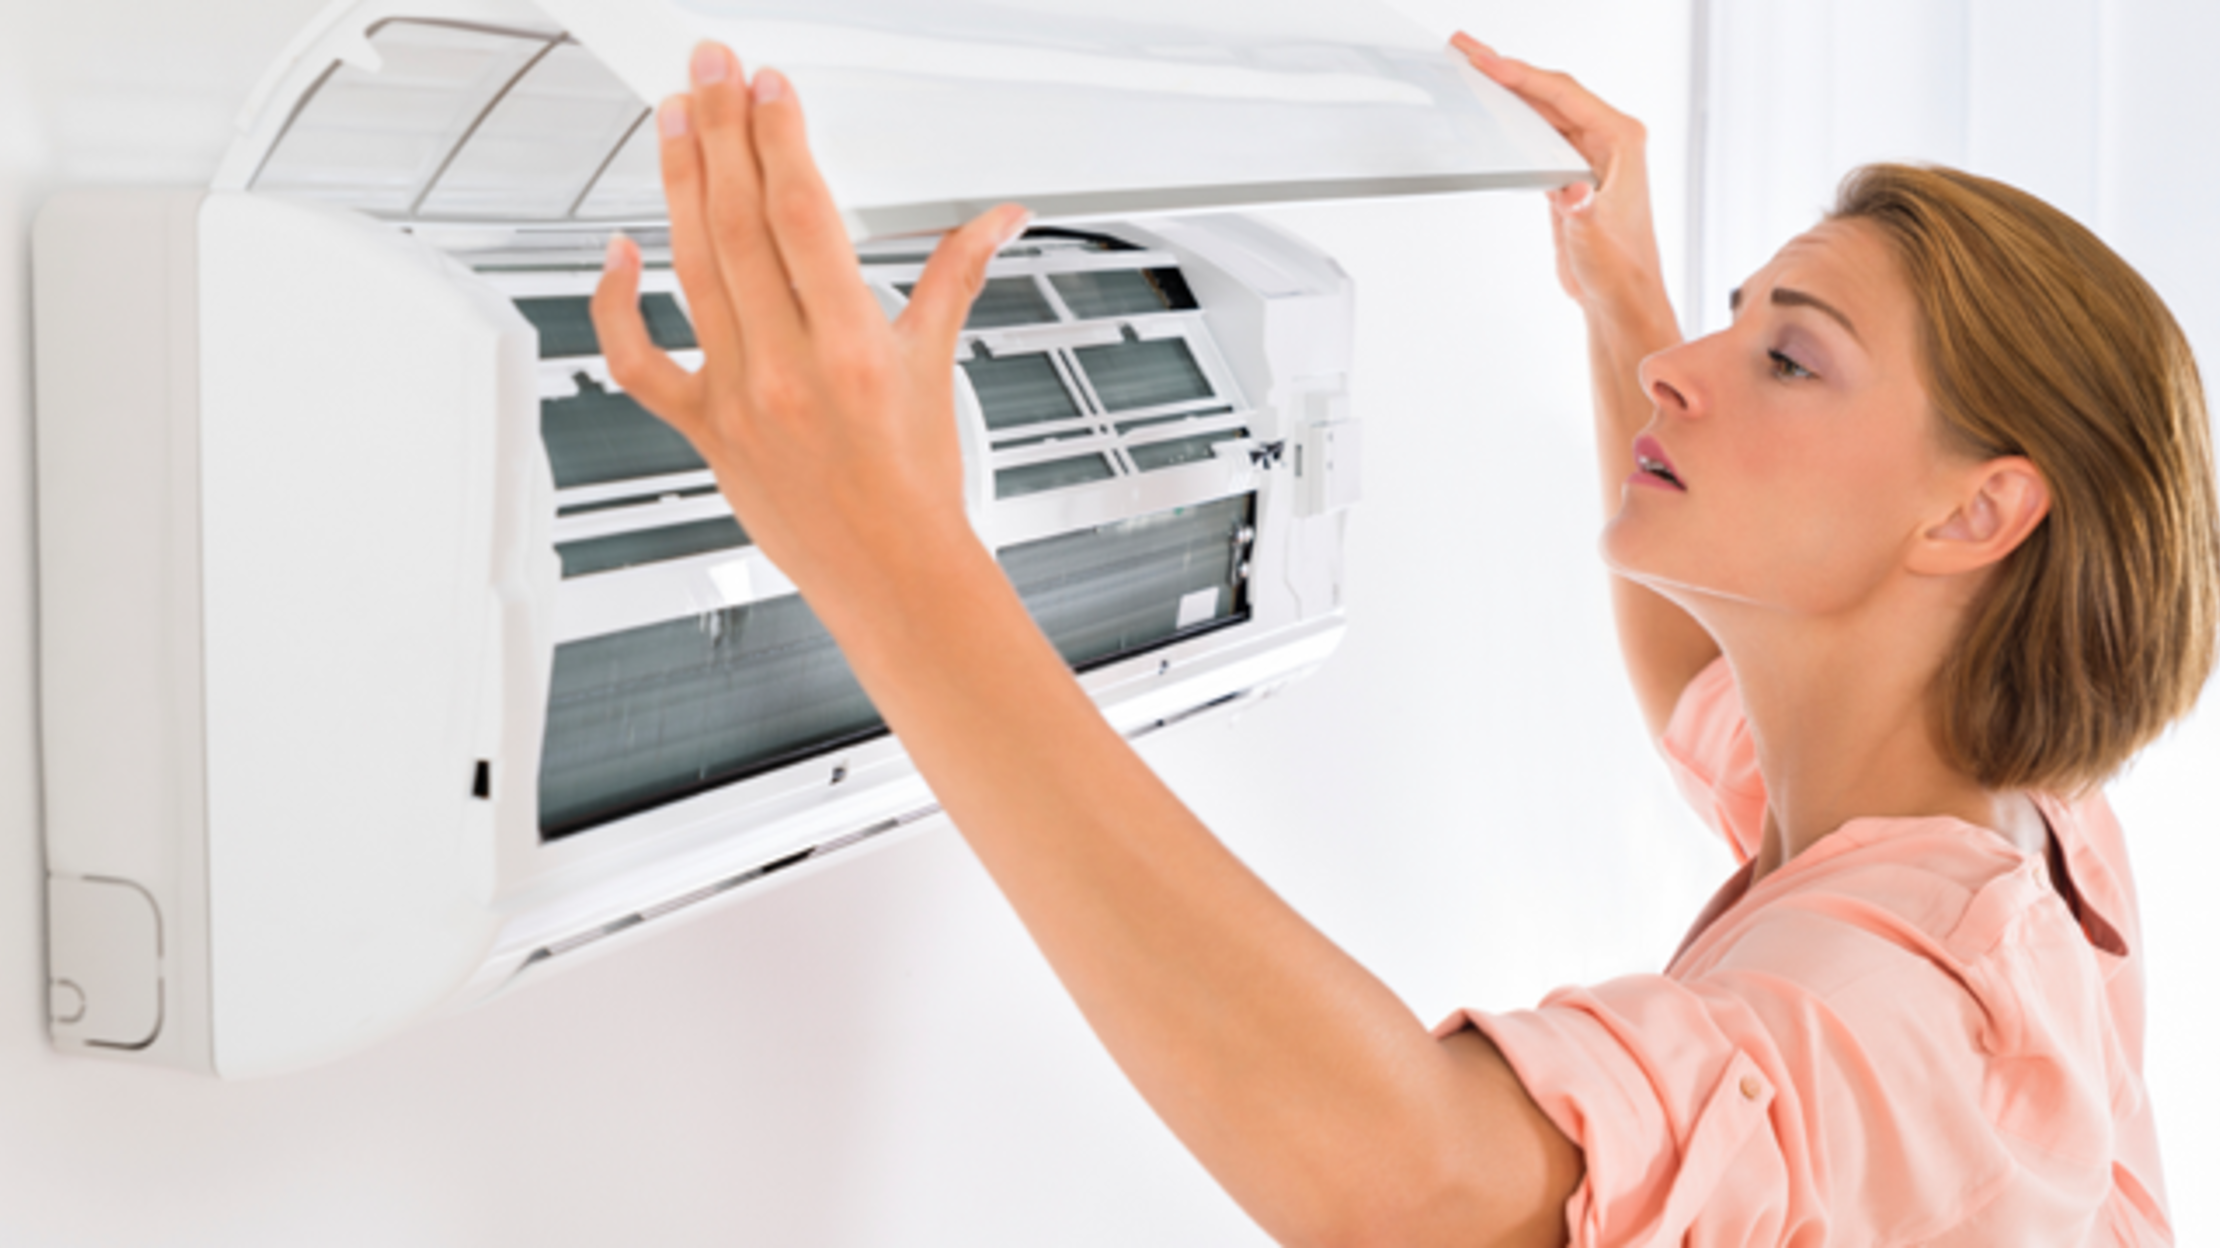 How to Safely Plug in an Air Conditioner   Mental Floss